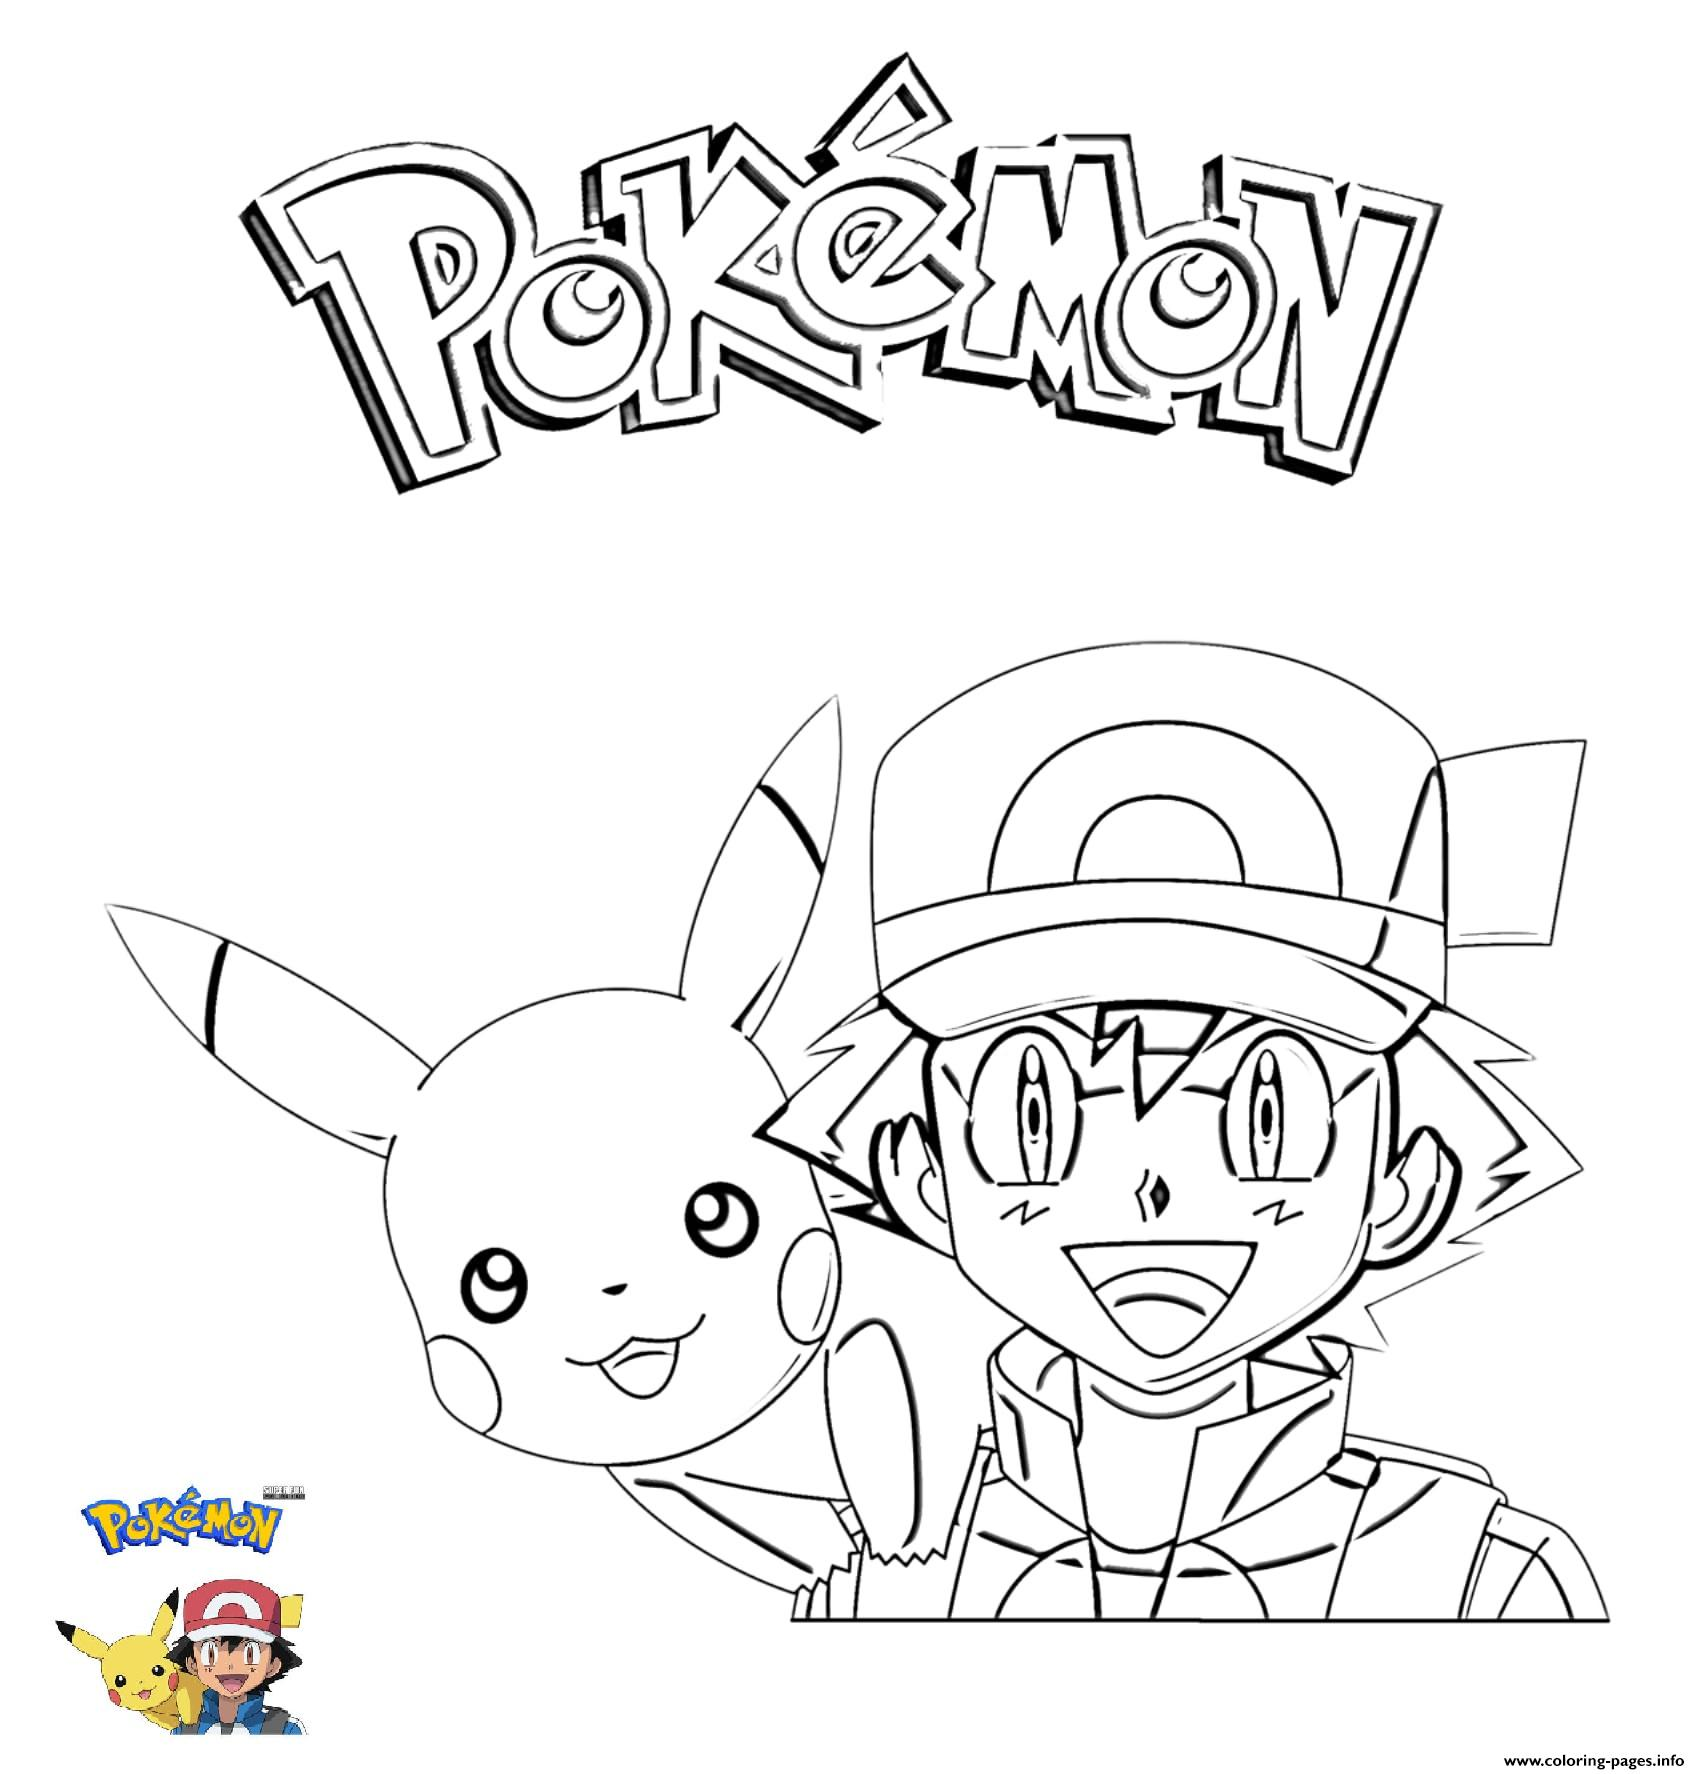 photograph about Pikachu Printable referred to as 2 Ash And Pikachu Pokemon Coloring Web pages Printable